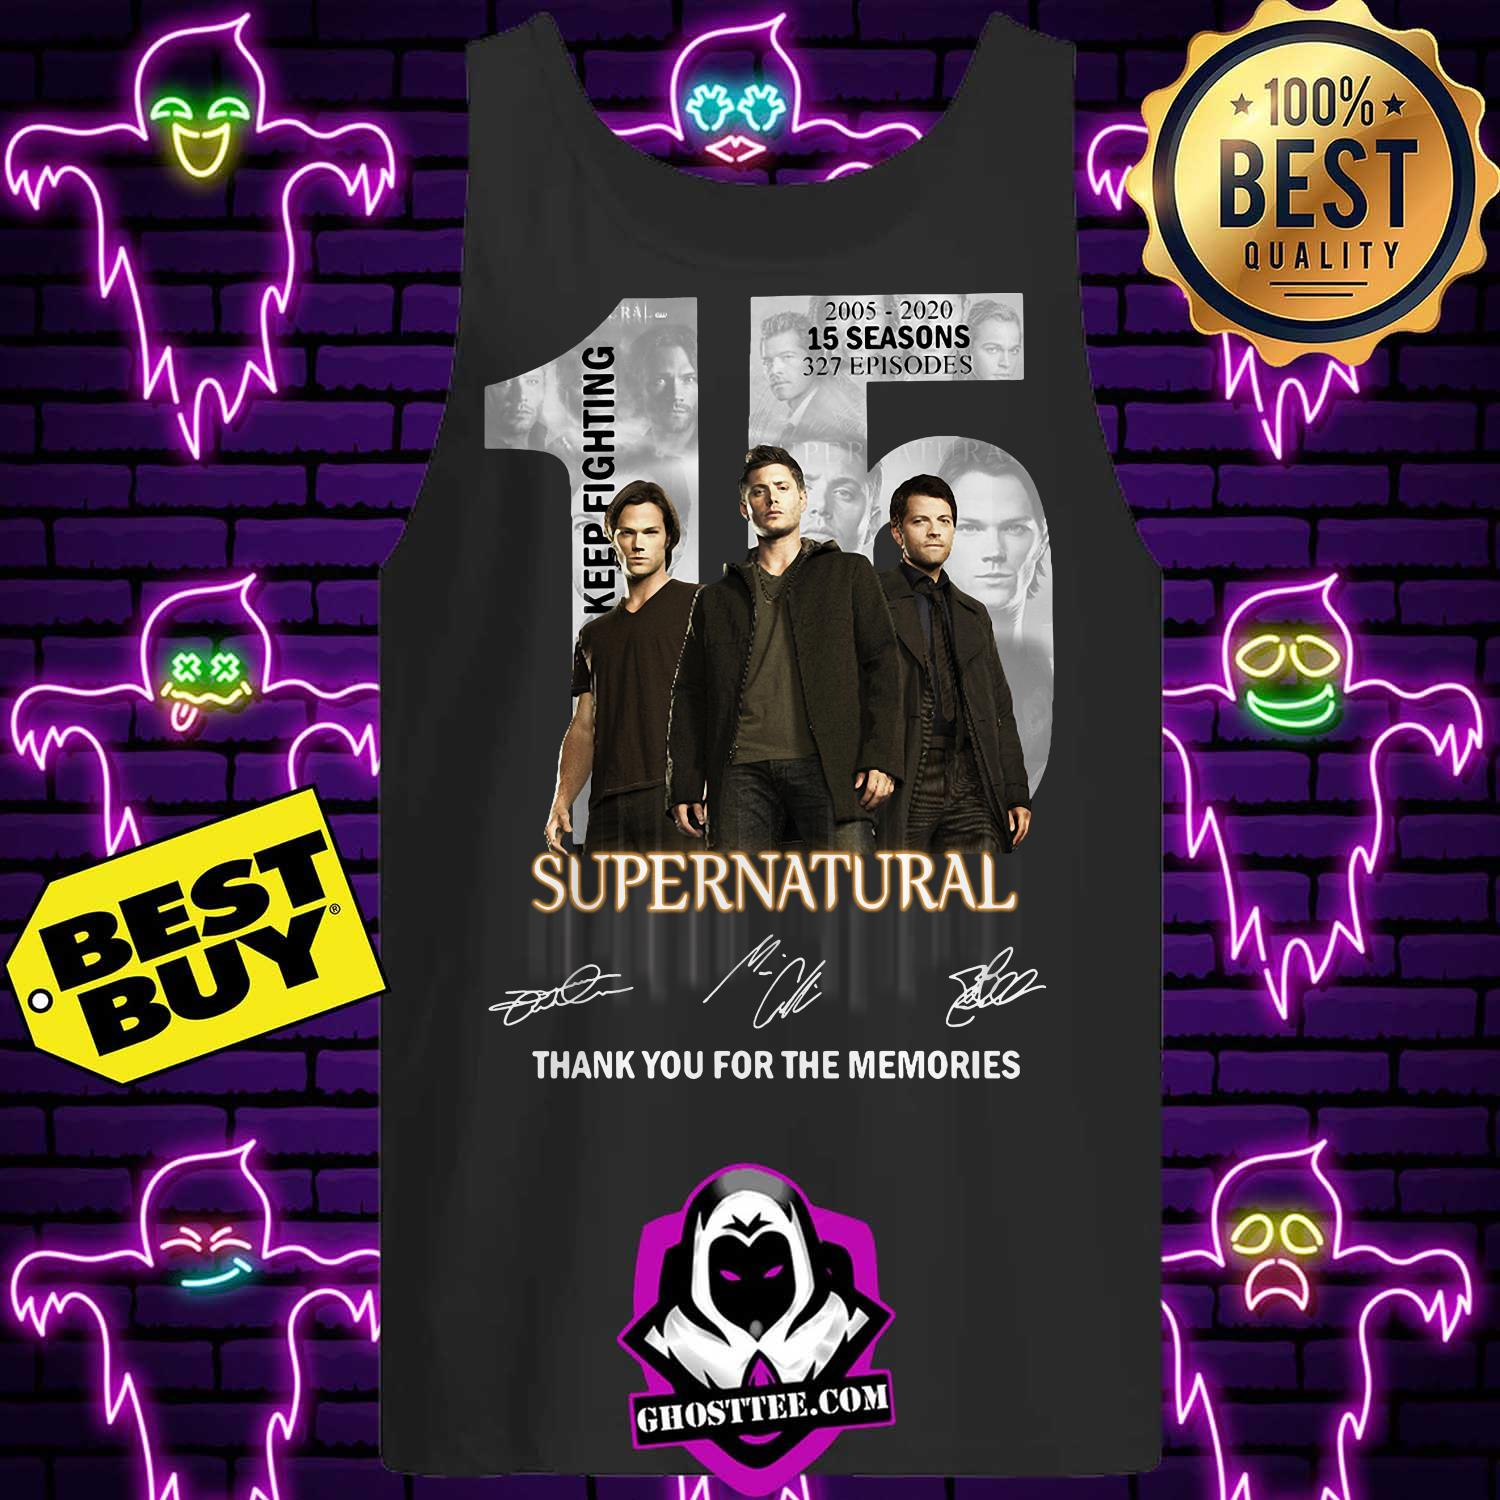 15 years of supernatural 2005 2020 15 seasons 237 episodes signature tank top 1 - 15 Years of Supernatural 2005 2020 15 Seasons 237 Episodes signature shirt sweater